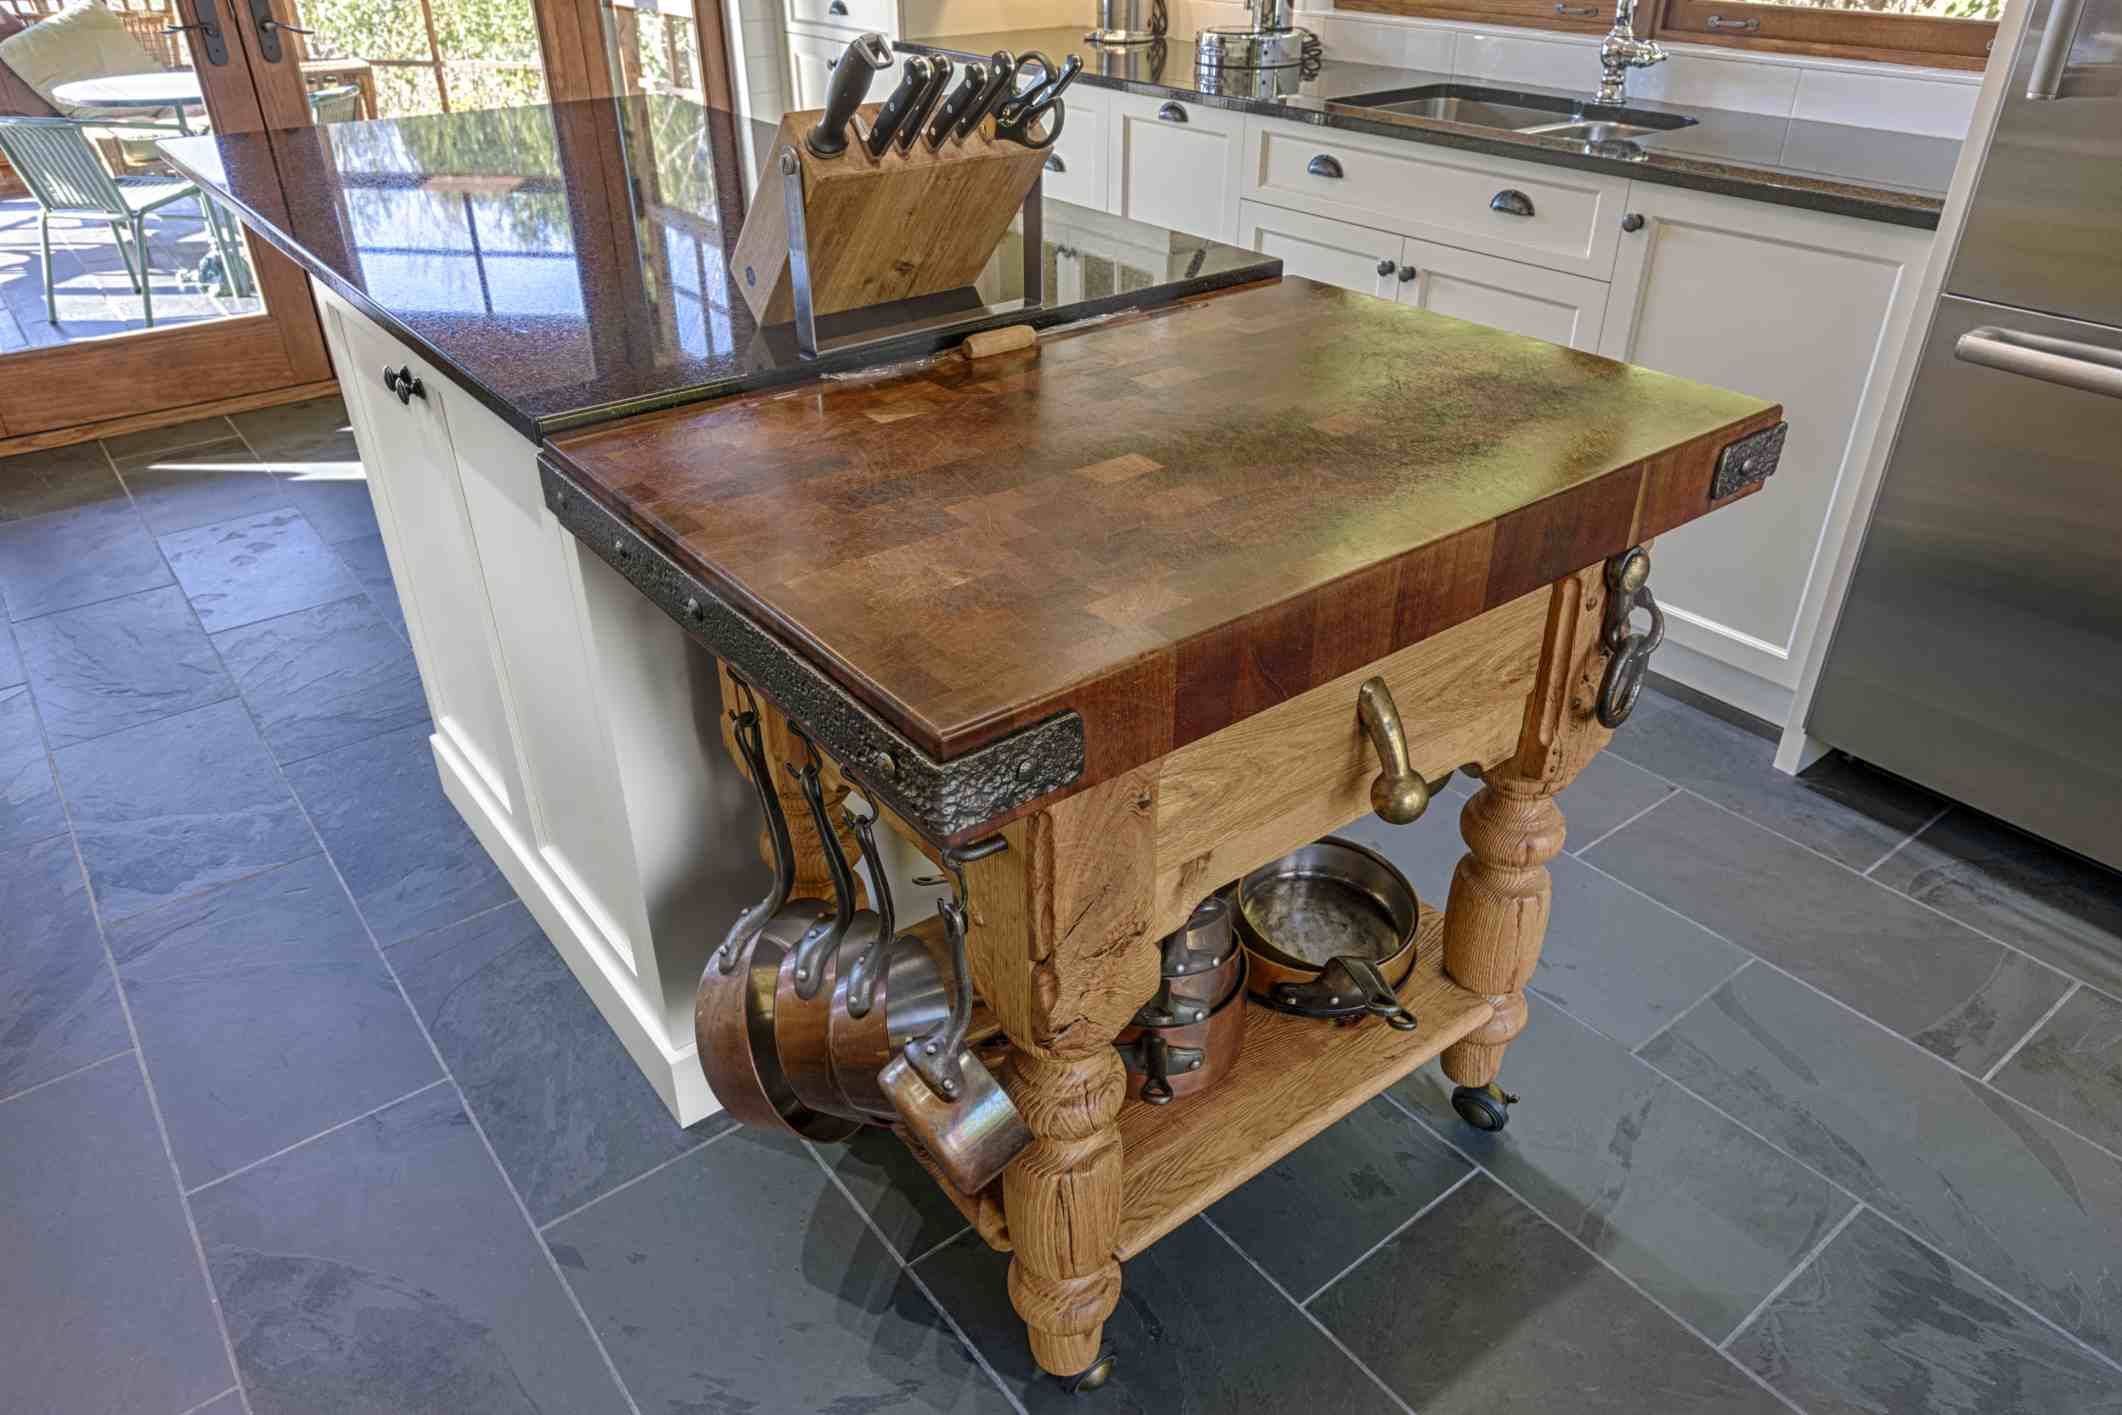 Inspirational Freestanding butchers Block island